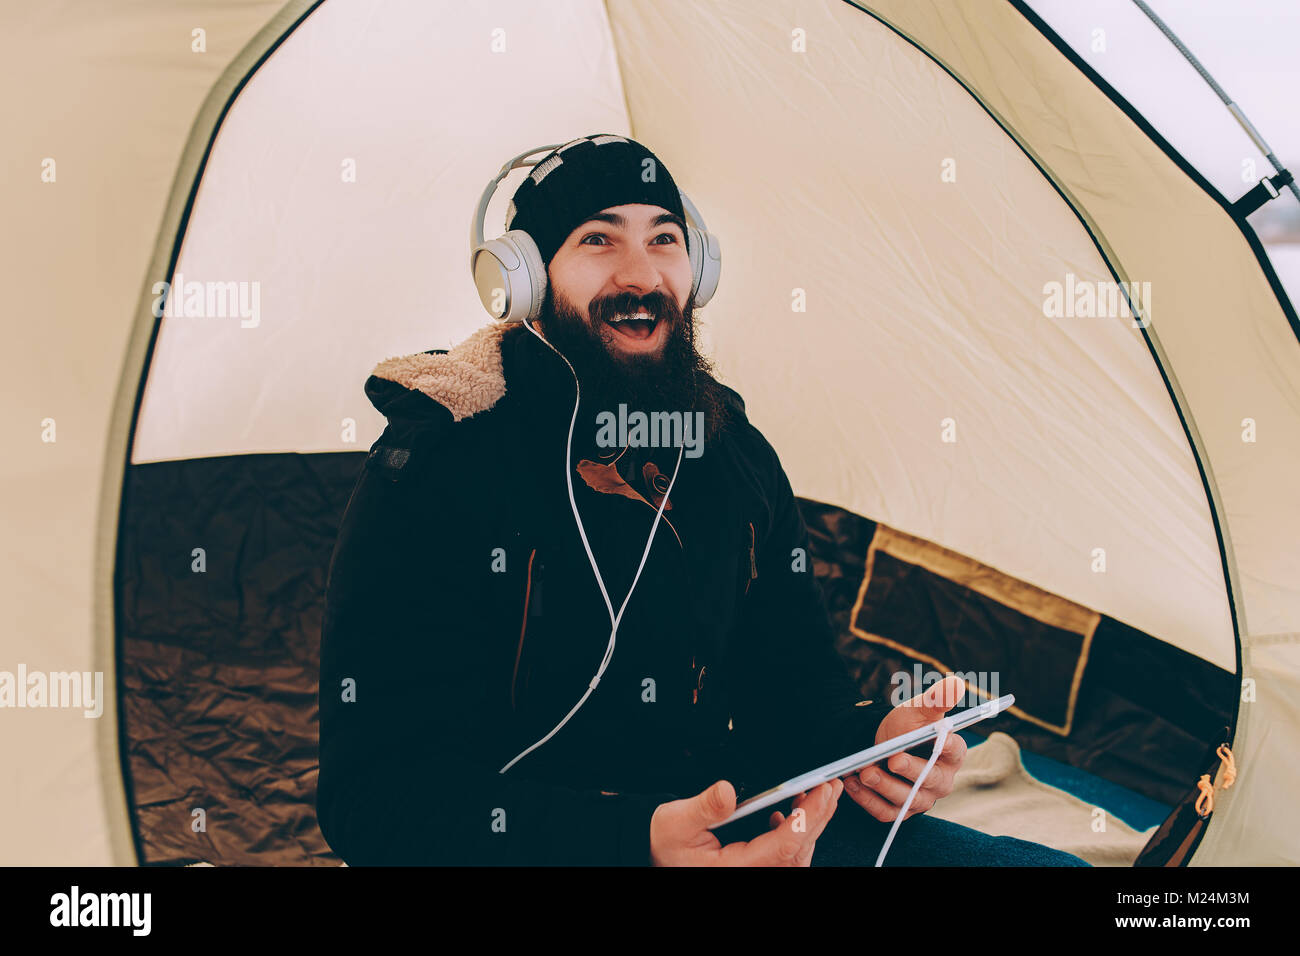 Homme barbu avec tablet laughing Photo Stock